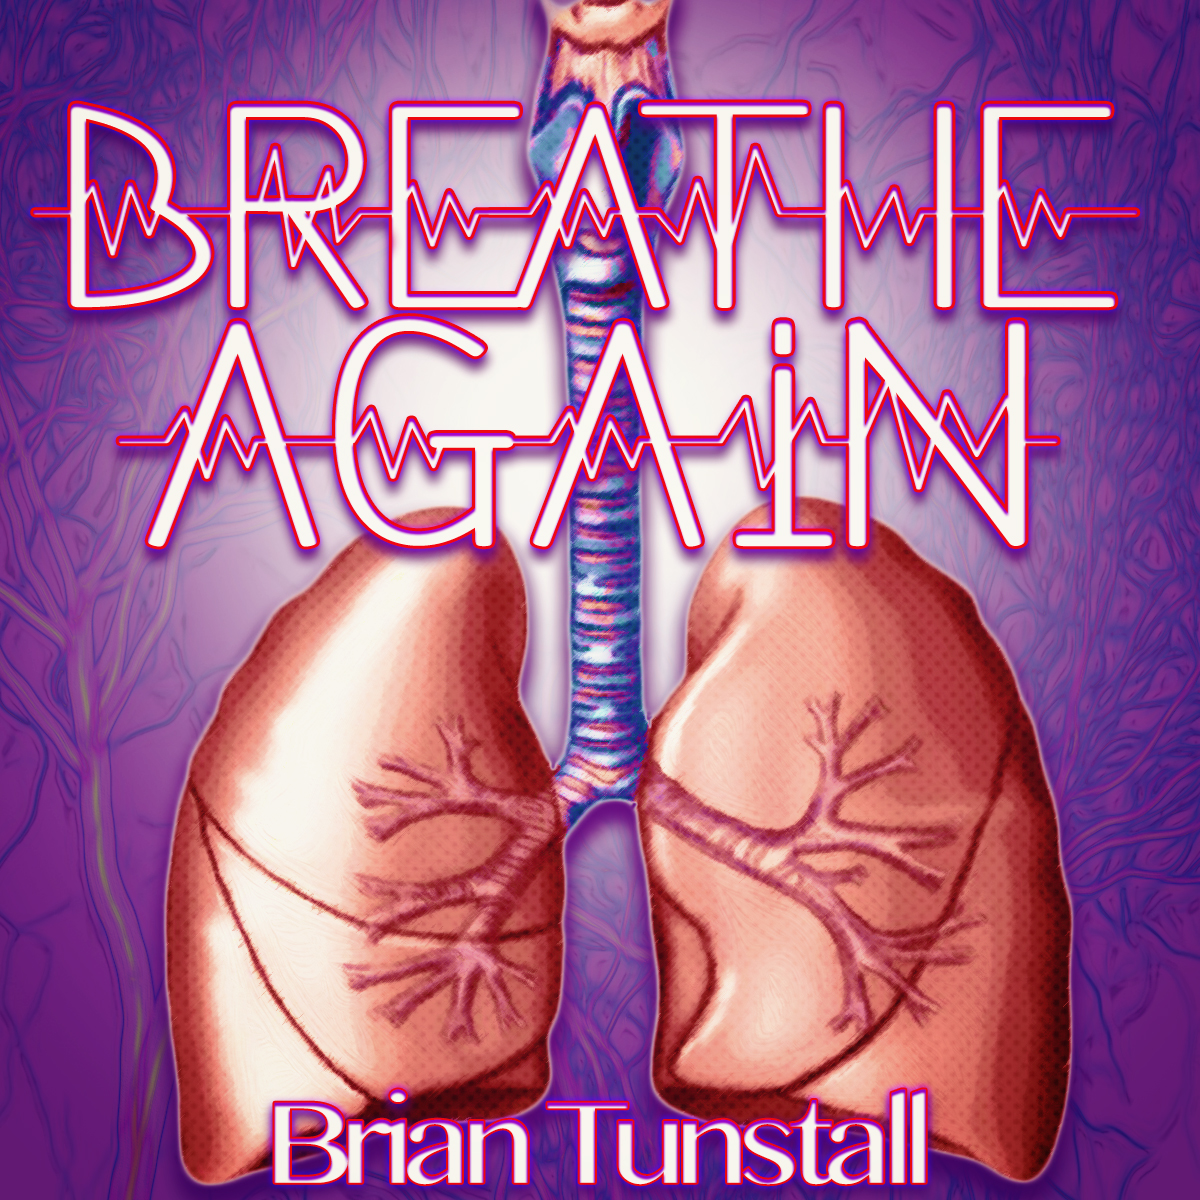 Breath Again by Brian Tunstall